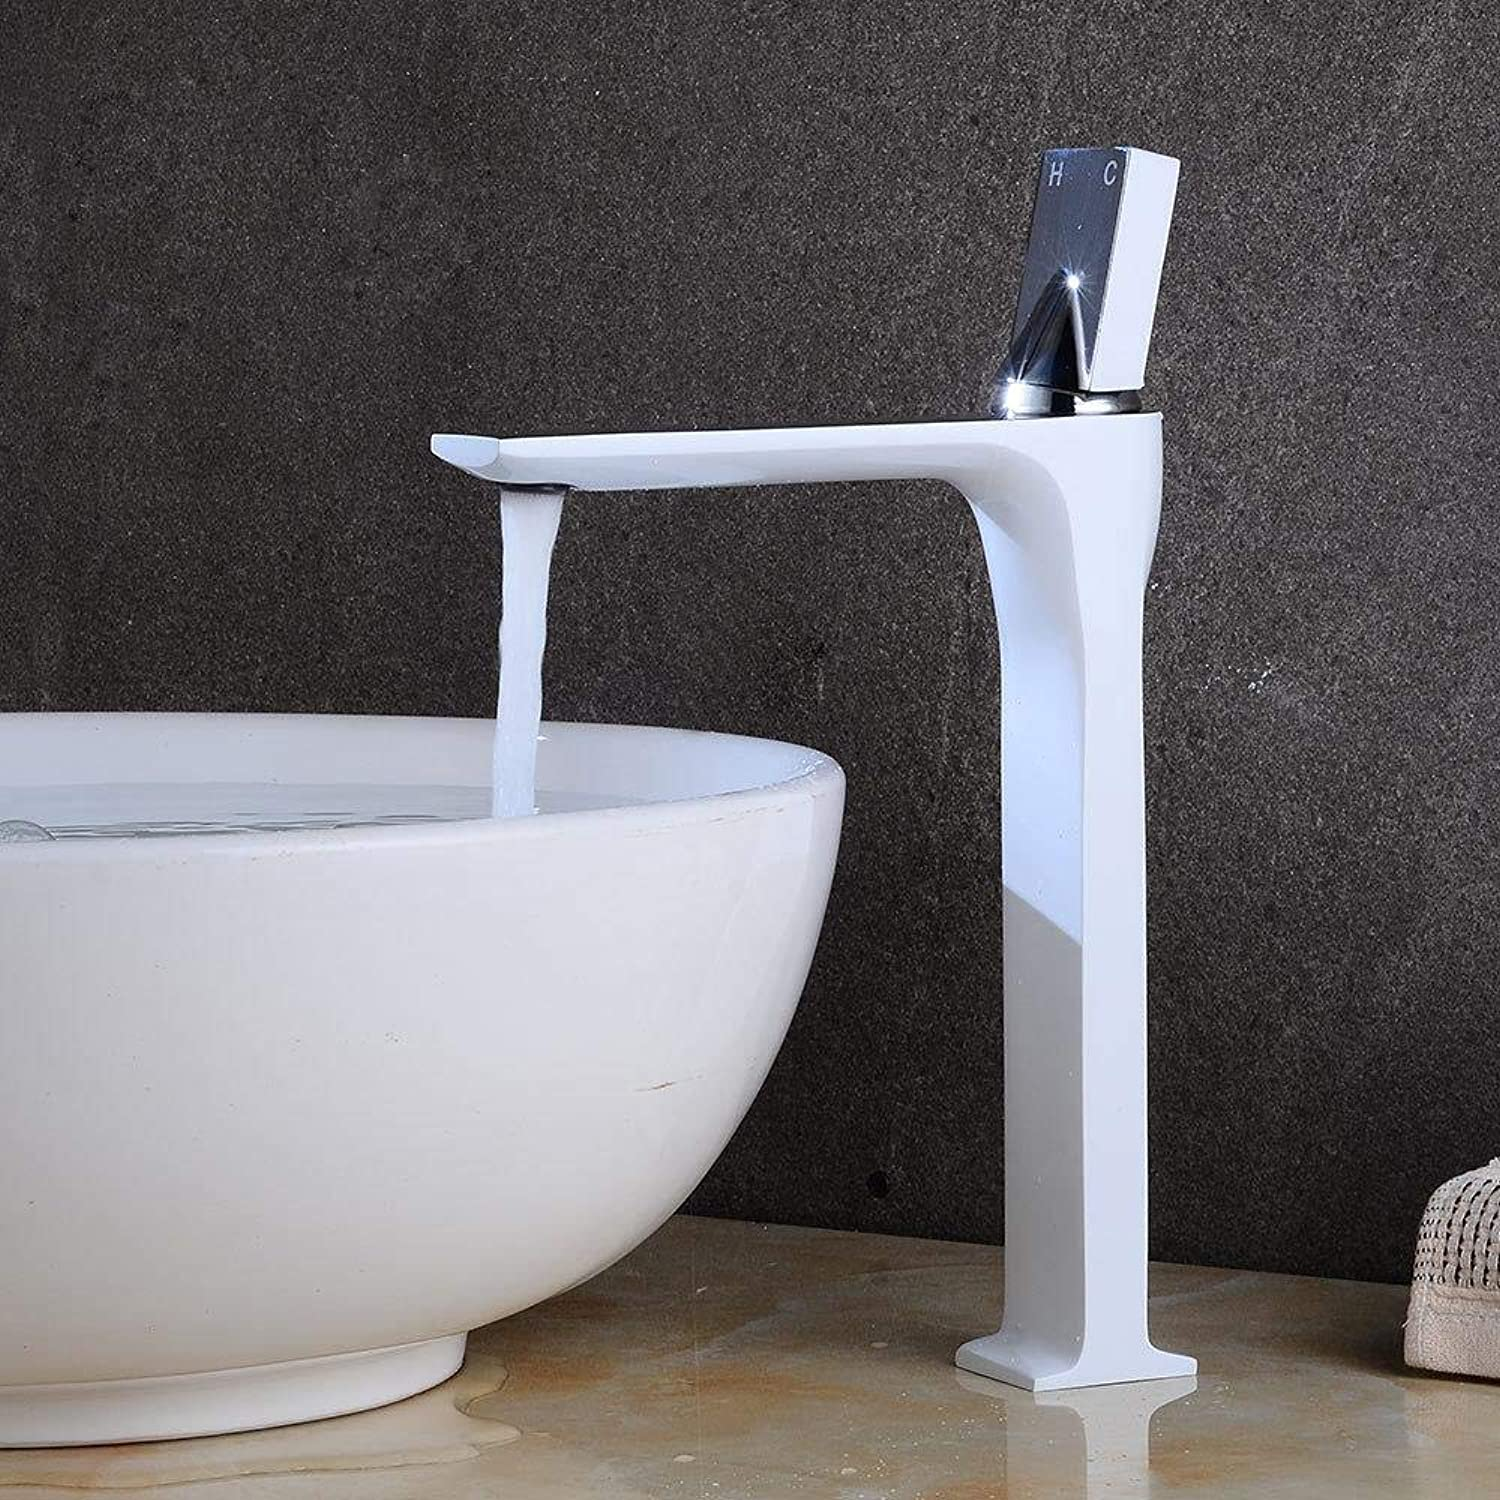 Tap Paint Hot and Cold Basin Faucet Bathroom Creative Wash Basin Faucet Above Counter Basin Faucet